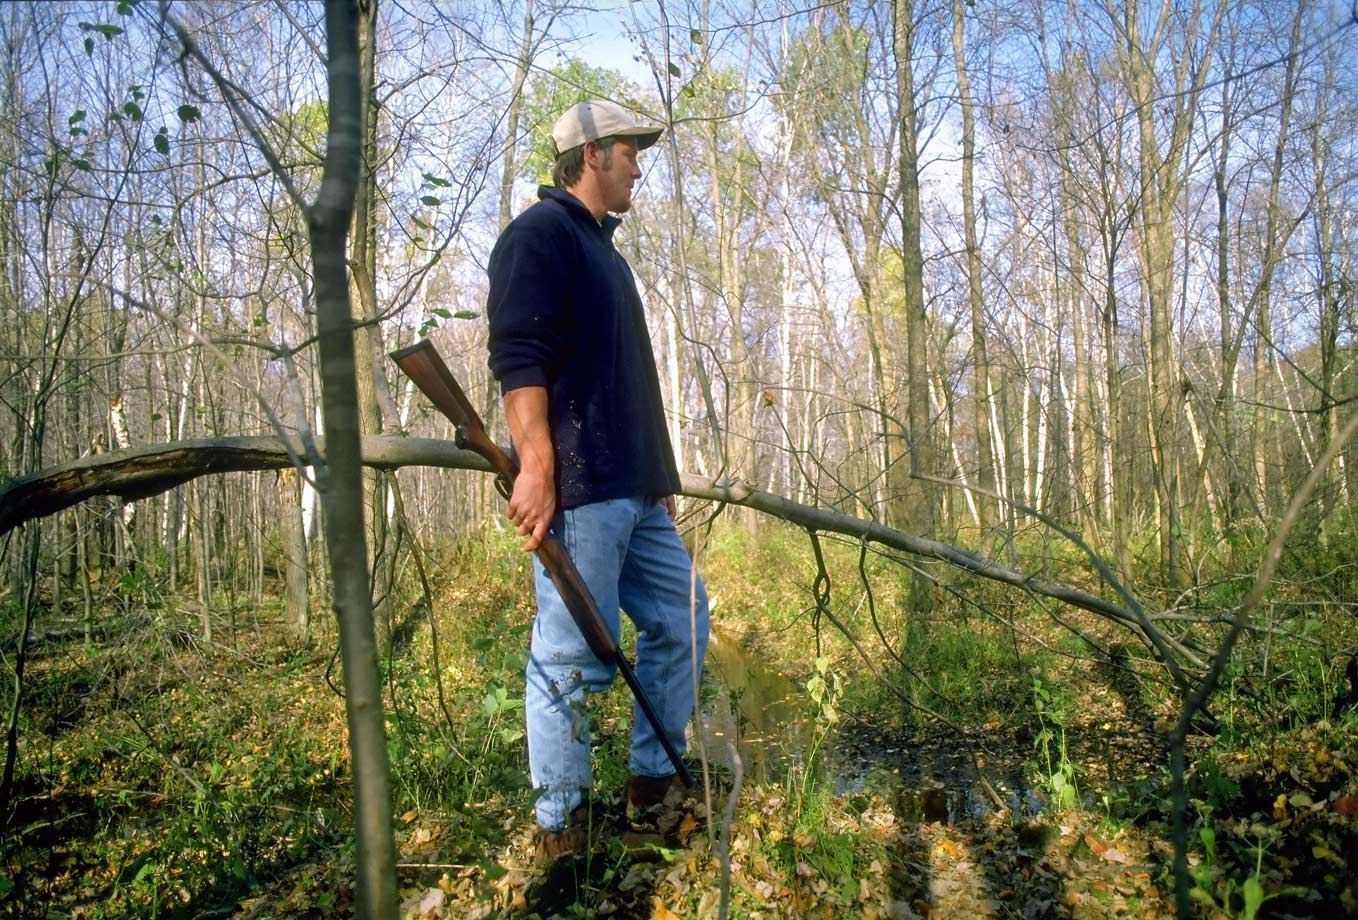 "At a private 200-acre hunting and fishing preserve, Favre goes in search of grouse, though not exactly by the book. ""Here, grousie! Come on out, grousie!"" he calls. The only fauna that respond to Favre's call are a couple of garter snakes."